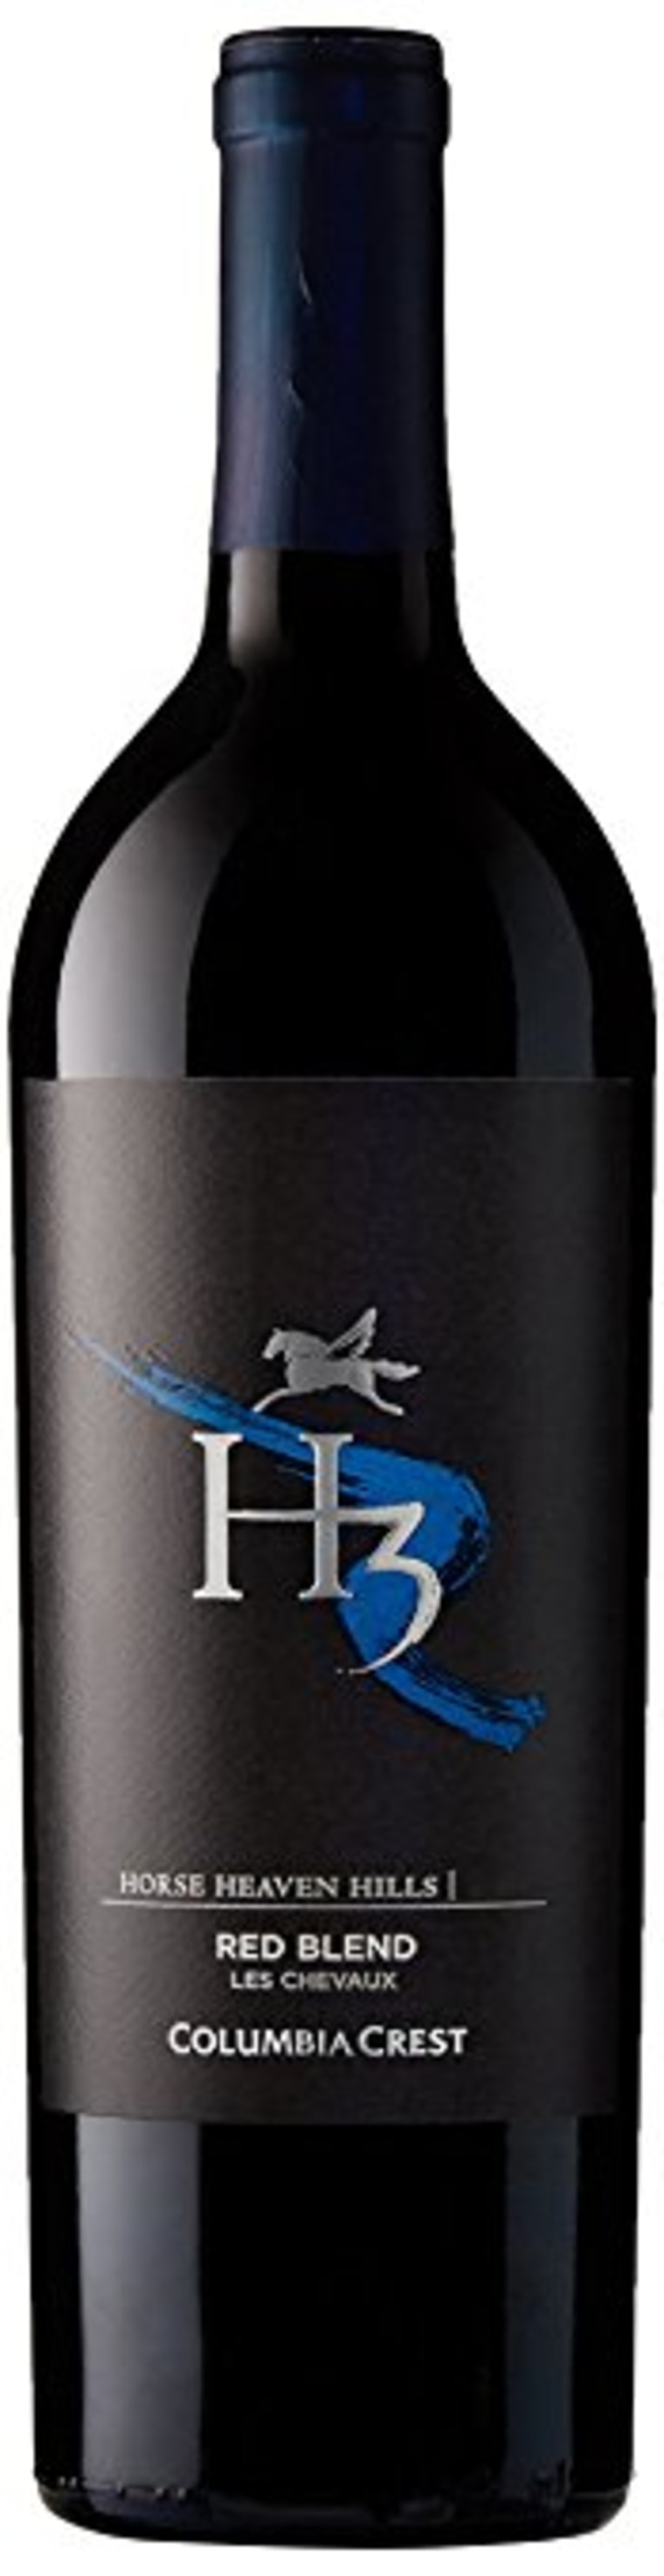 2013 Columbia Crest H3 Les Chevaux Red Wine